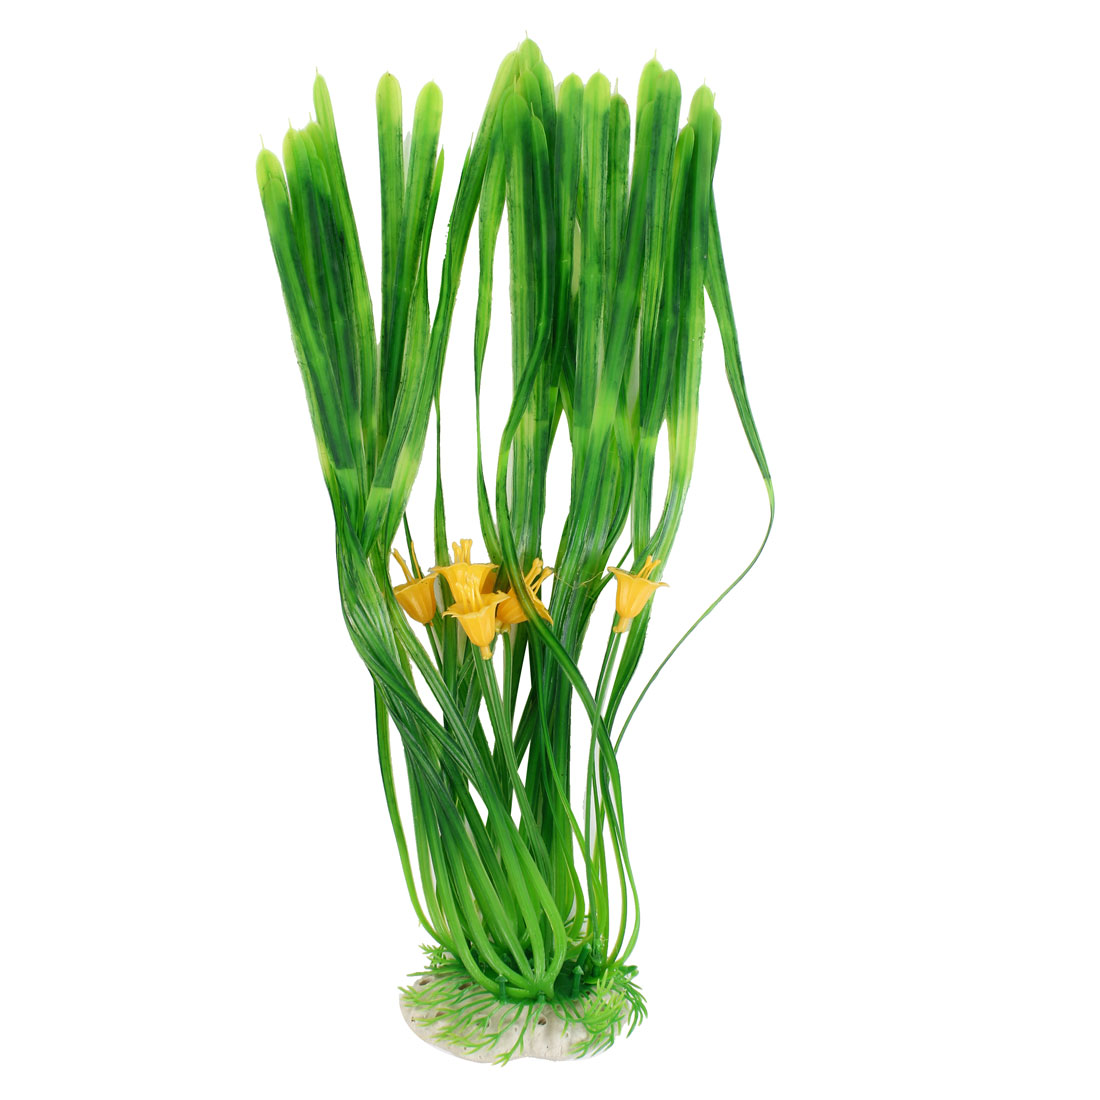 38cm High Green Yellow Artificial Plastic Water Grass Plant for Fish Tank Aquarium